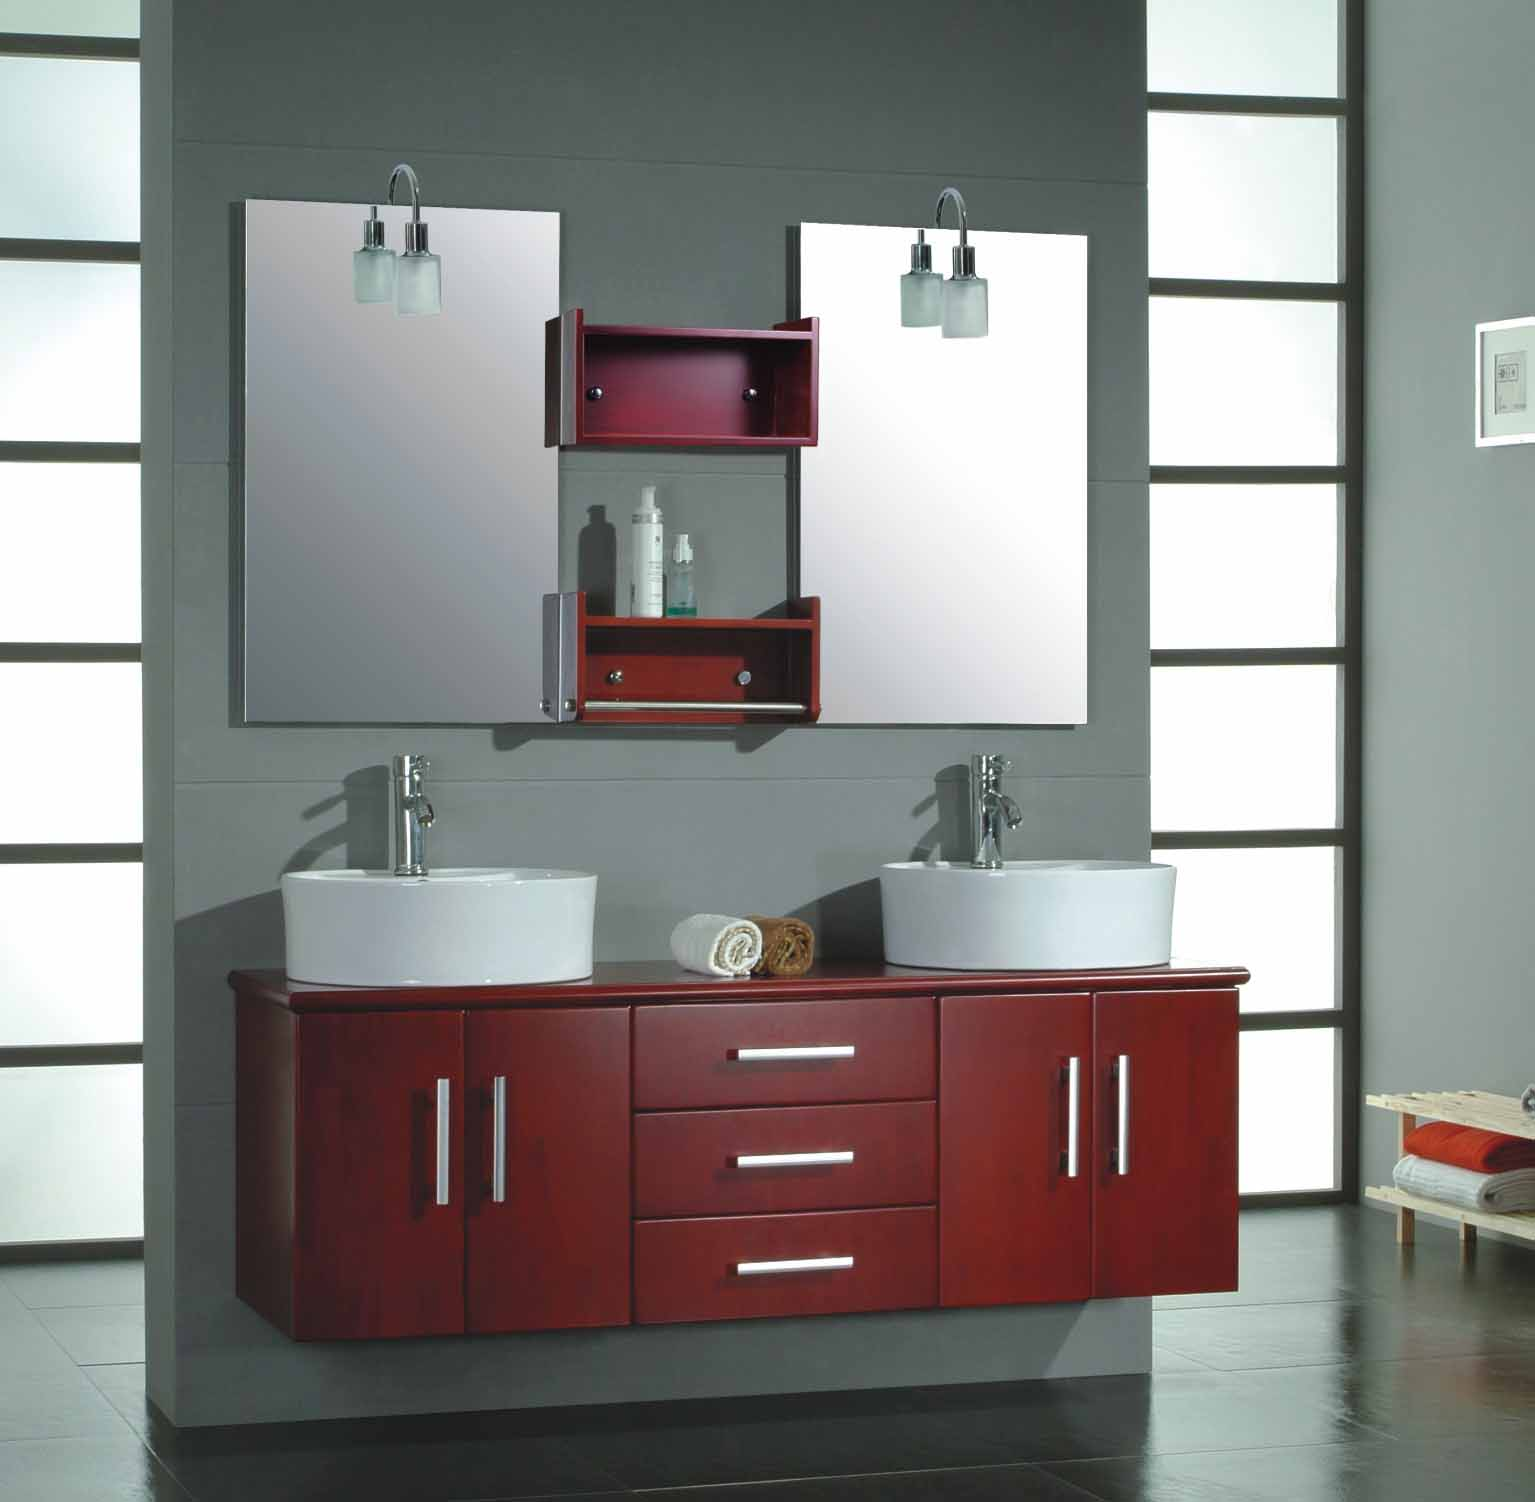 Interior design ideas bathroom furniture choosing furniture for your bathroom - Furniture picture ...